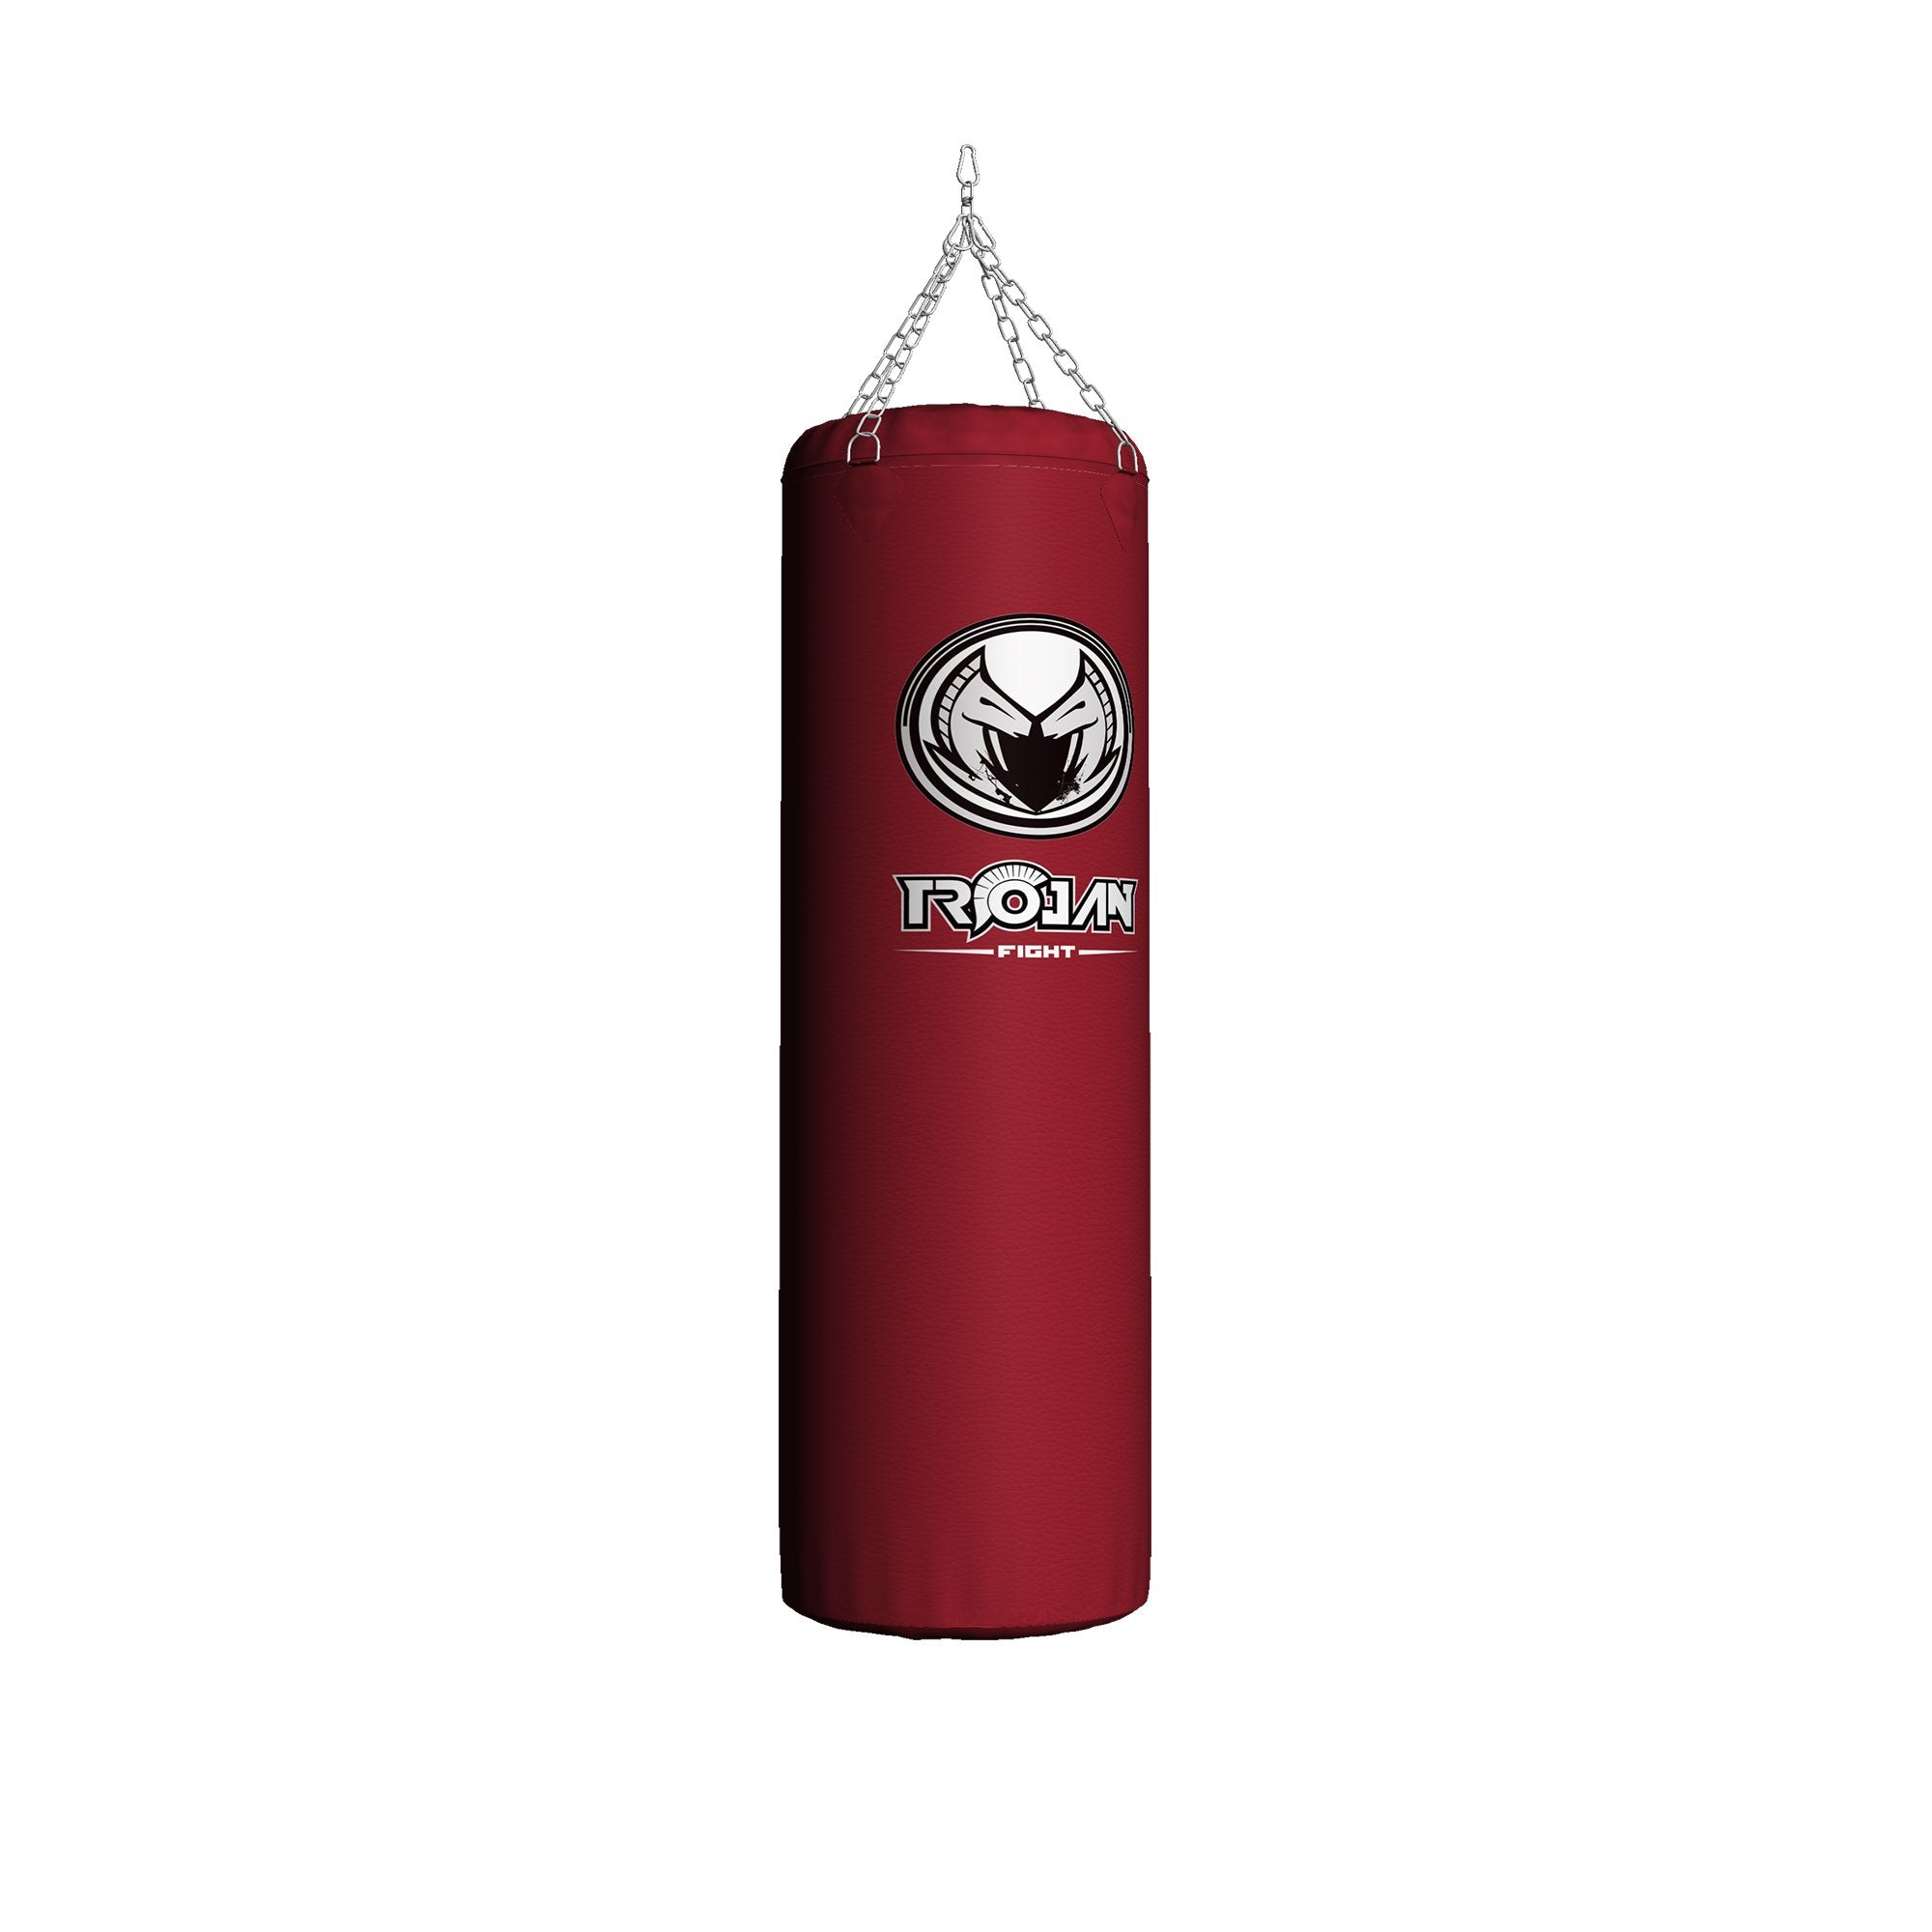 HEAVY BAG | PRO 20KG - Trojan Fight.com | TrojanFight Boxing